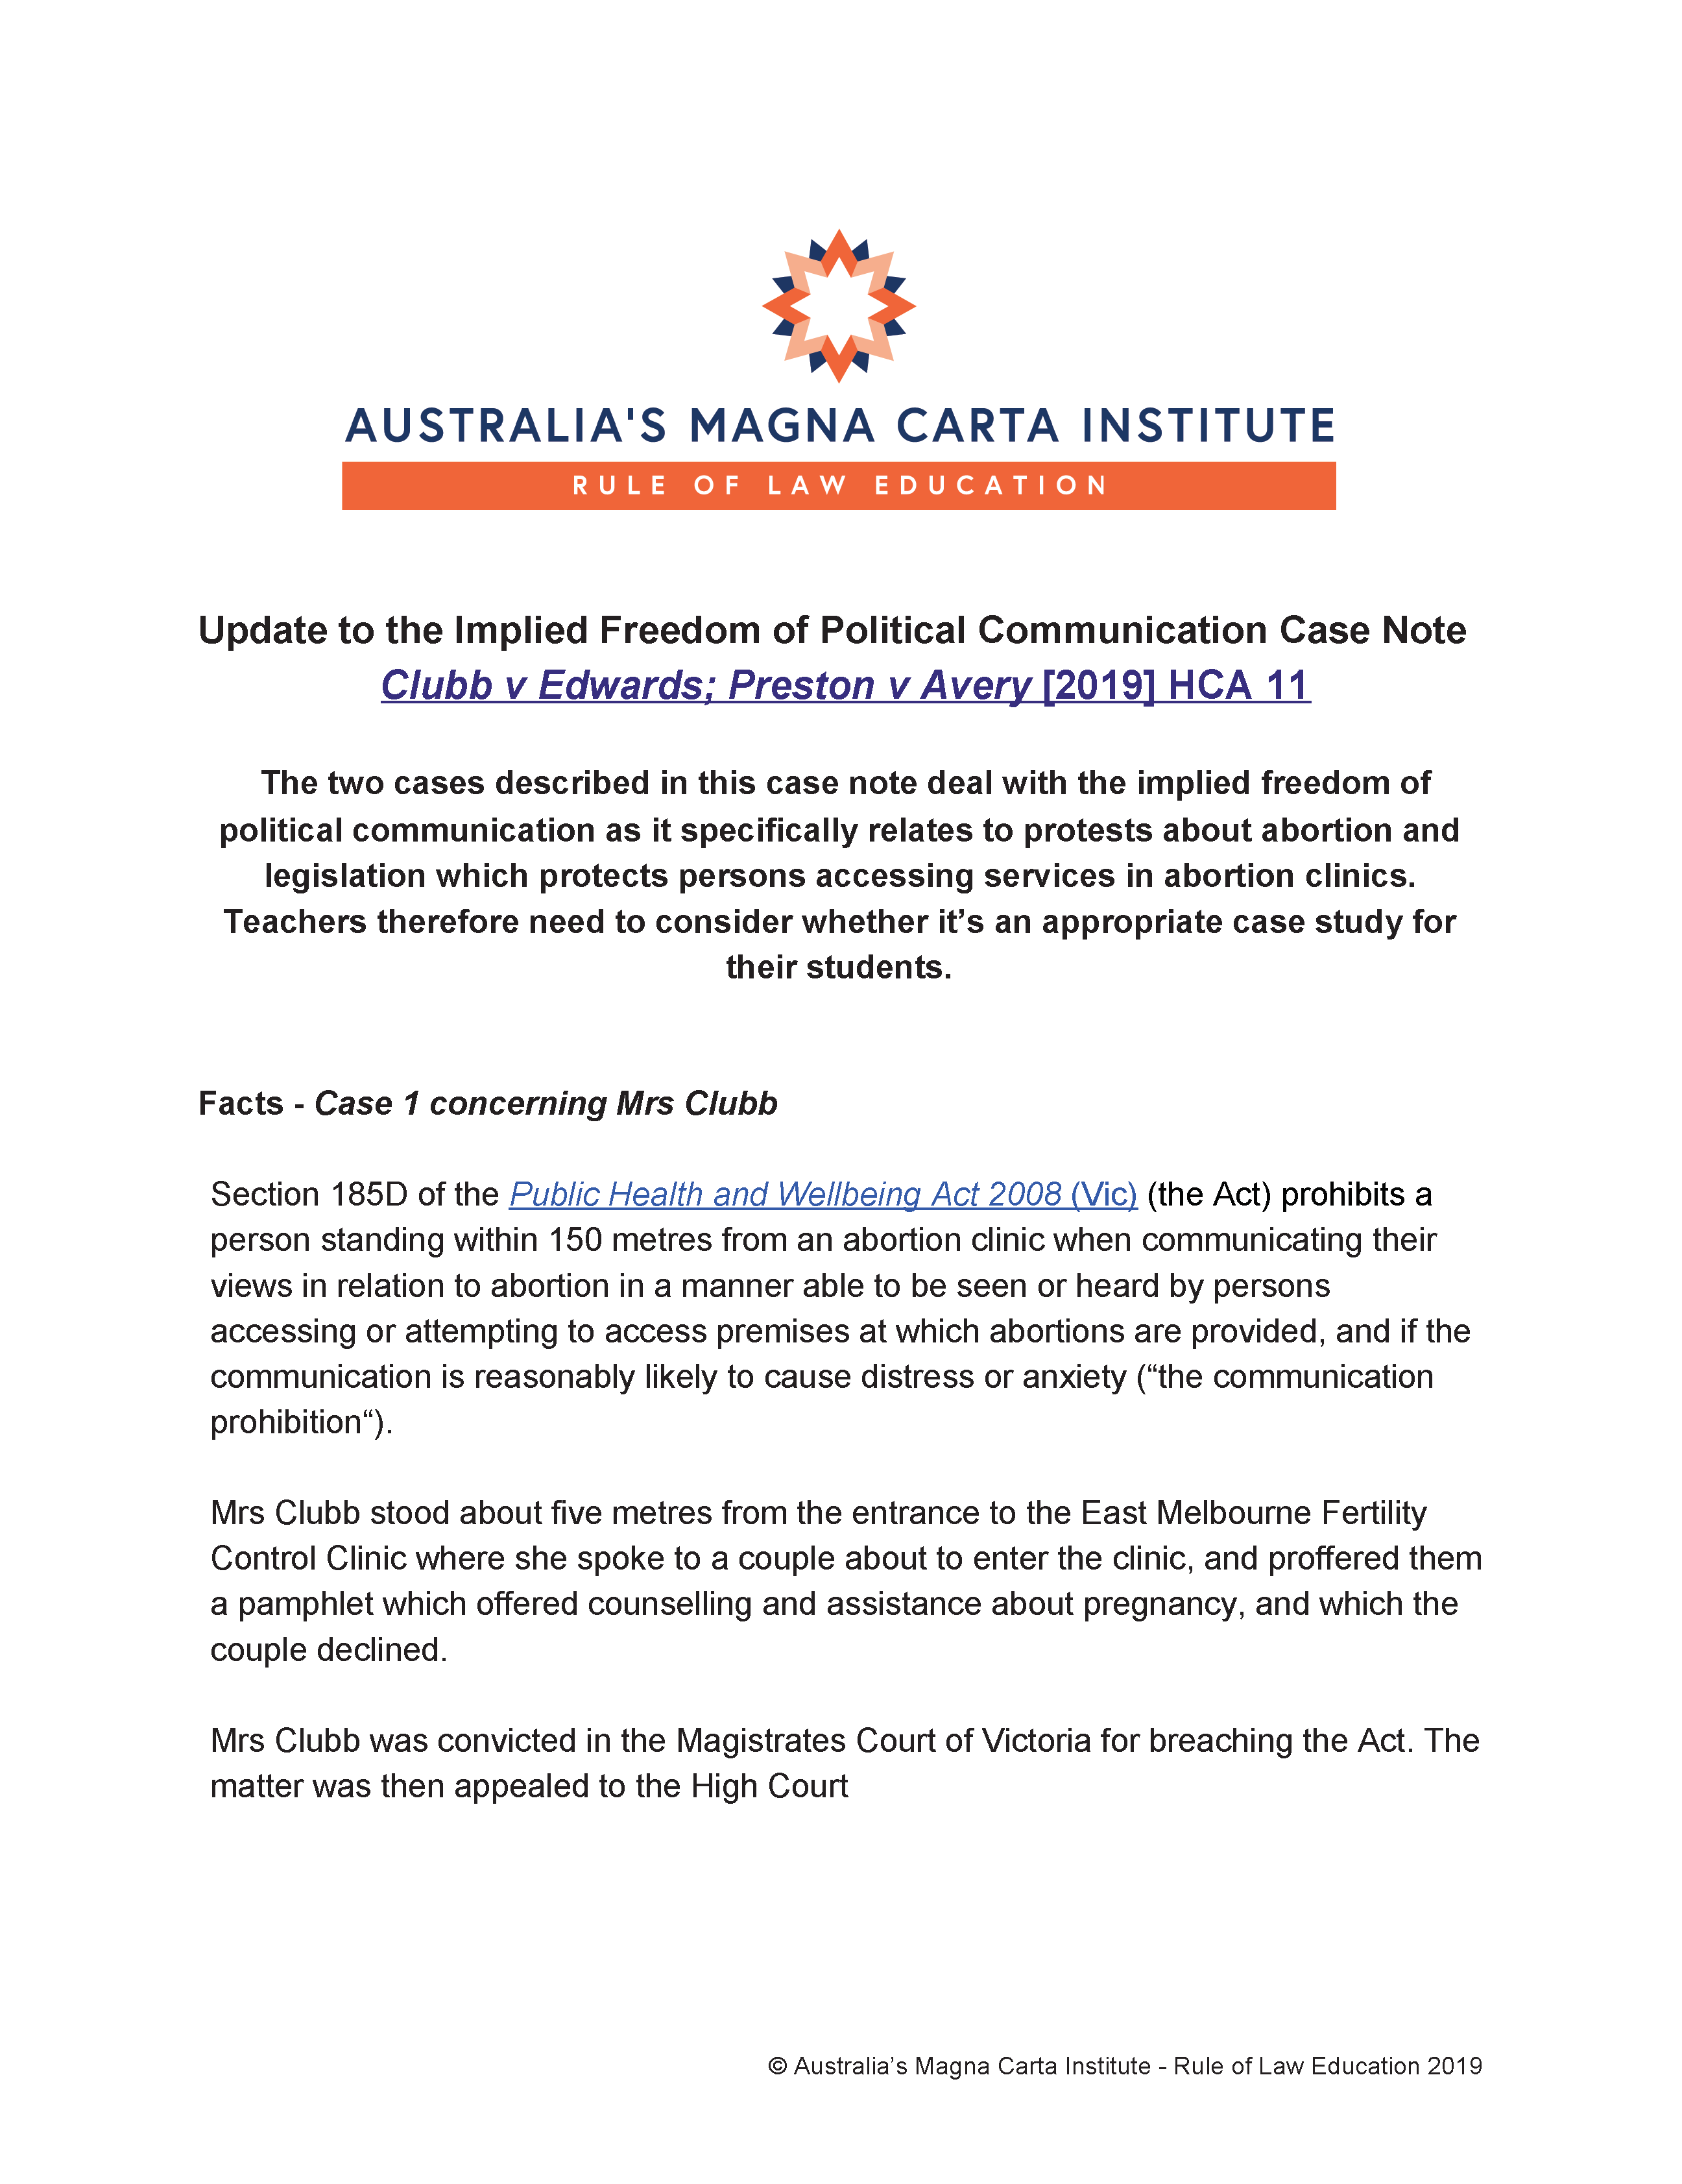 Case note - Implied freedom of Political Communication